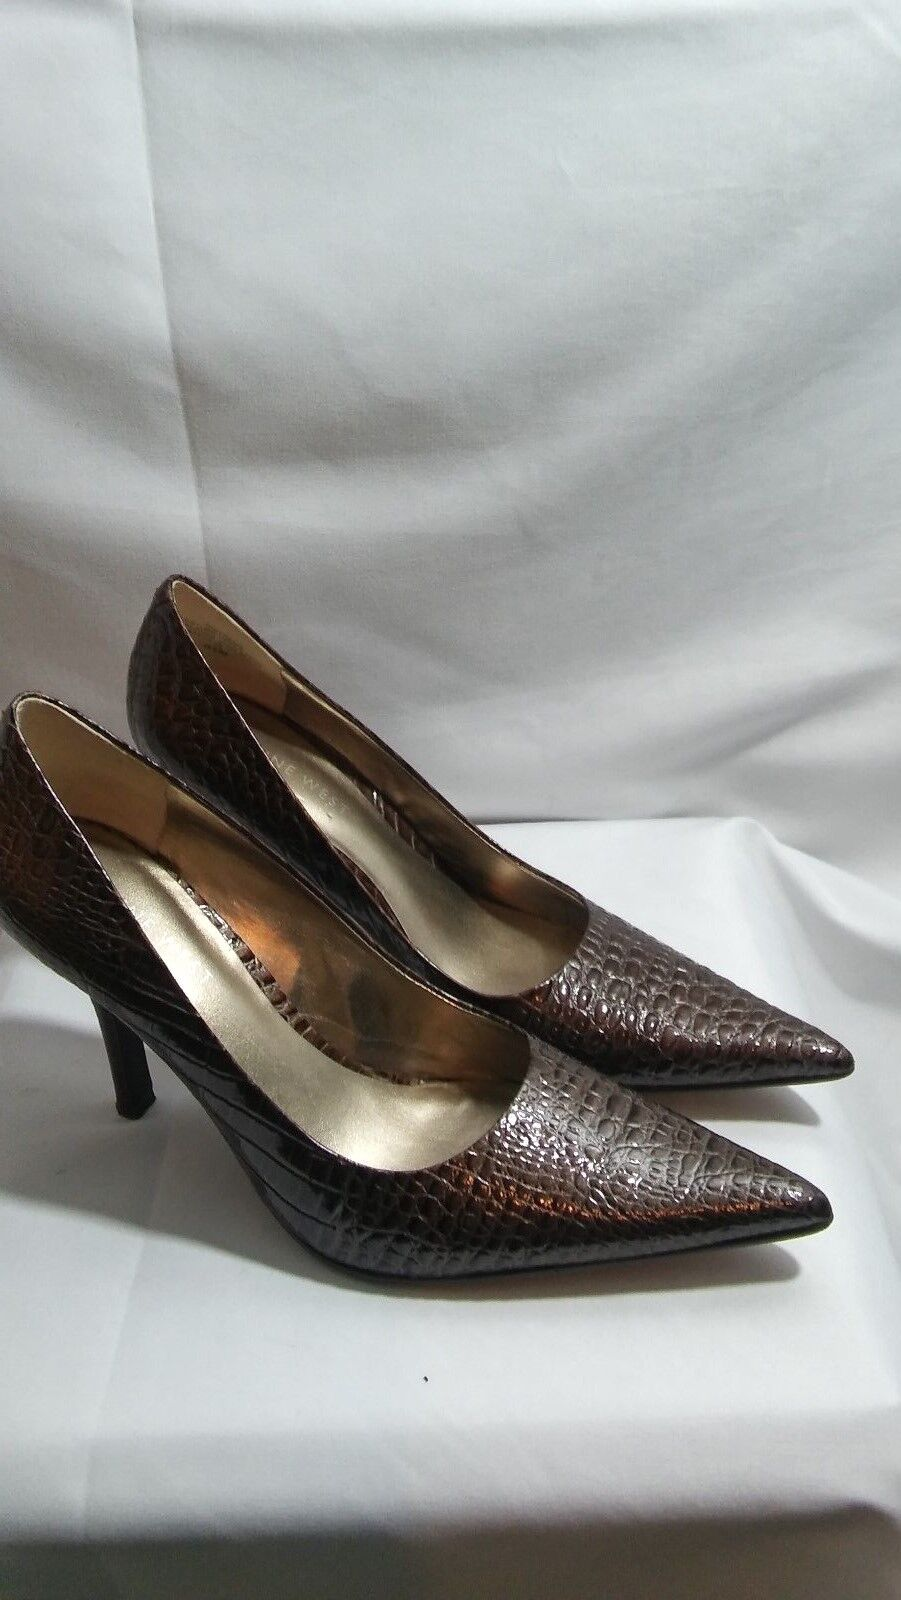 women on shoes Nine West brown leather slip on women heels size 6.5 M f2a05e